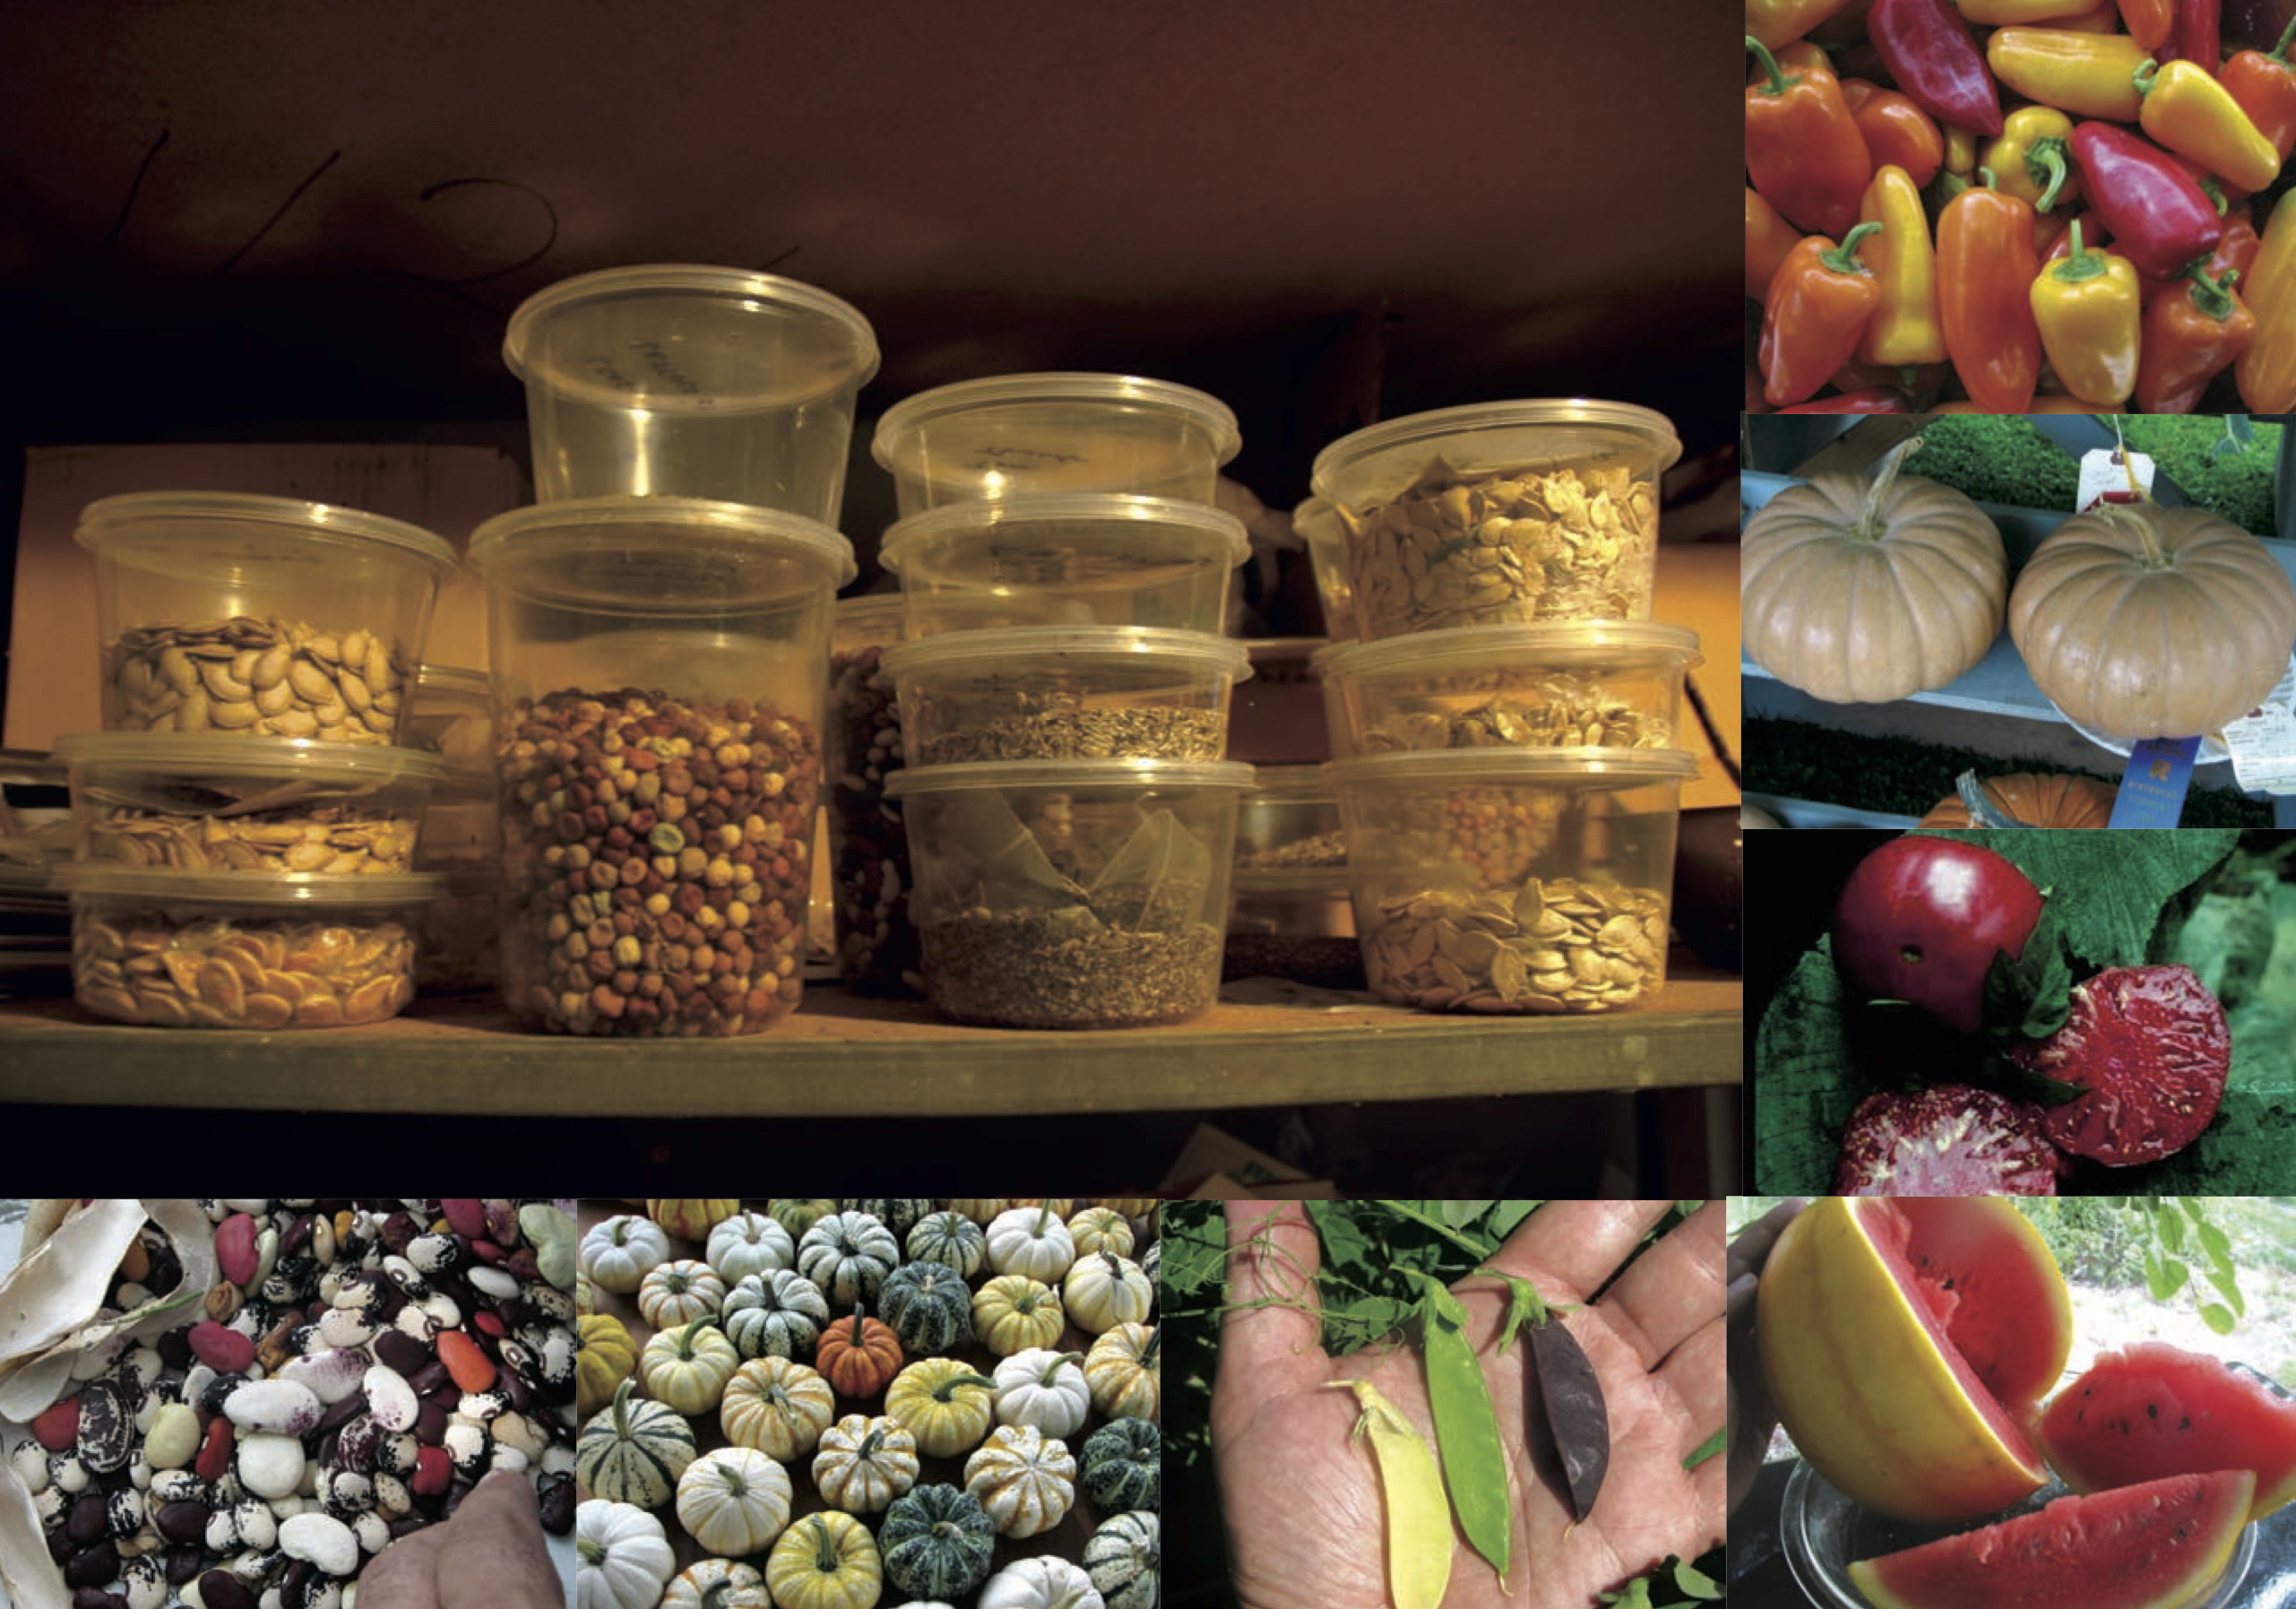 Some of his holdings and creations, including deli containers of sunflower, pea, and carrot seeds; fingerling peppers; Long Island Cheese pumpkins; Brandywine tomatoes; yellow-skinned watermelon; golden and purple peas; miniature edible pumpkins; and lima beans.